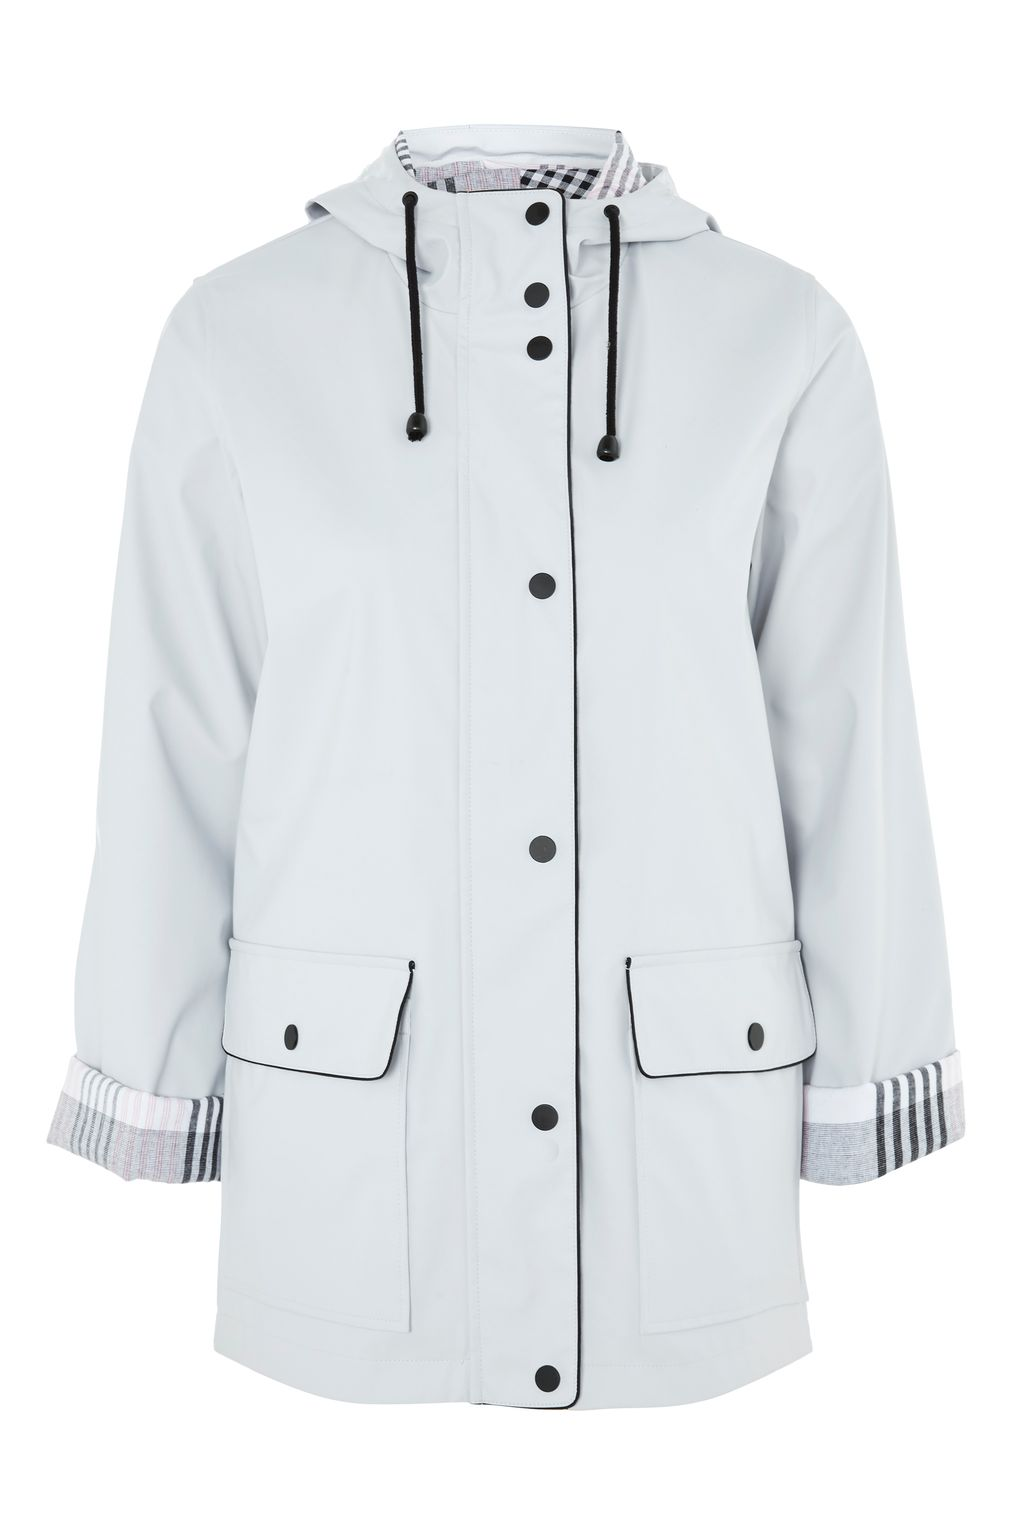 Six trendiest raincoats to see you through Spring